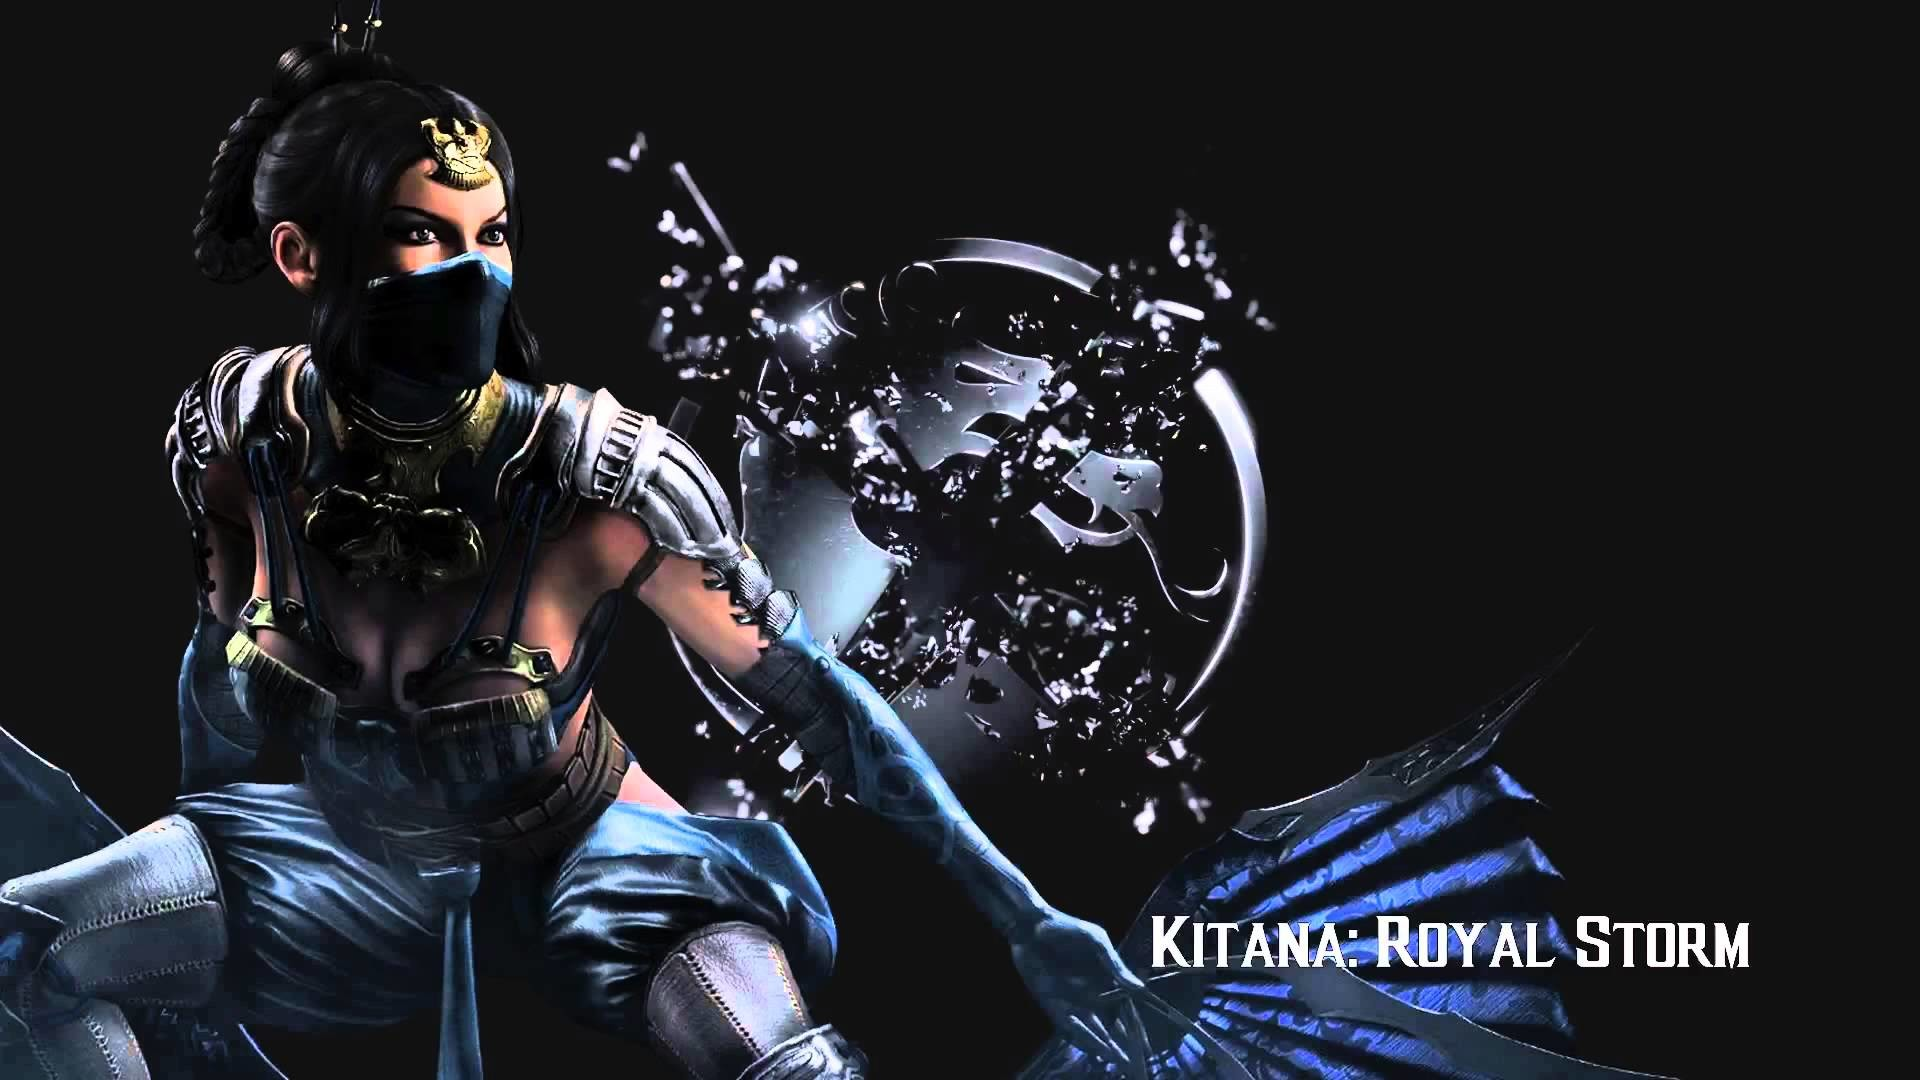 Mortal Kombat X Background: Mortal Kombat X Kitana Wallpaper (77+ Images